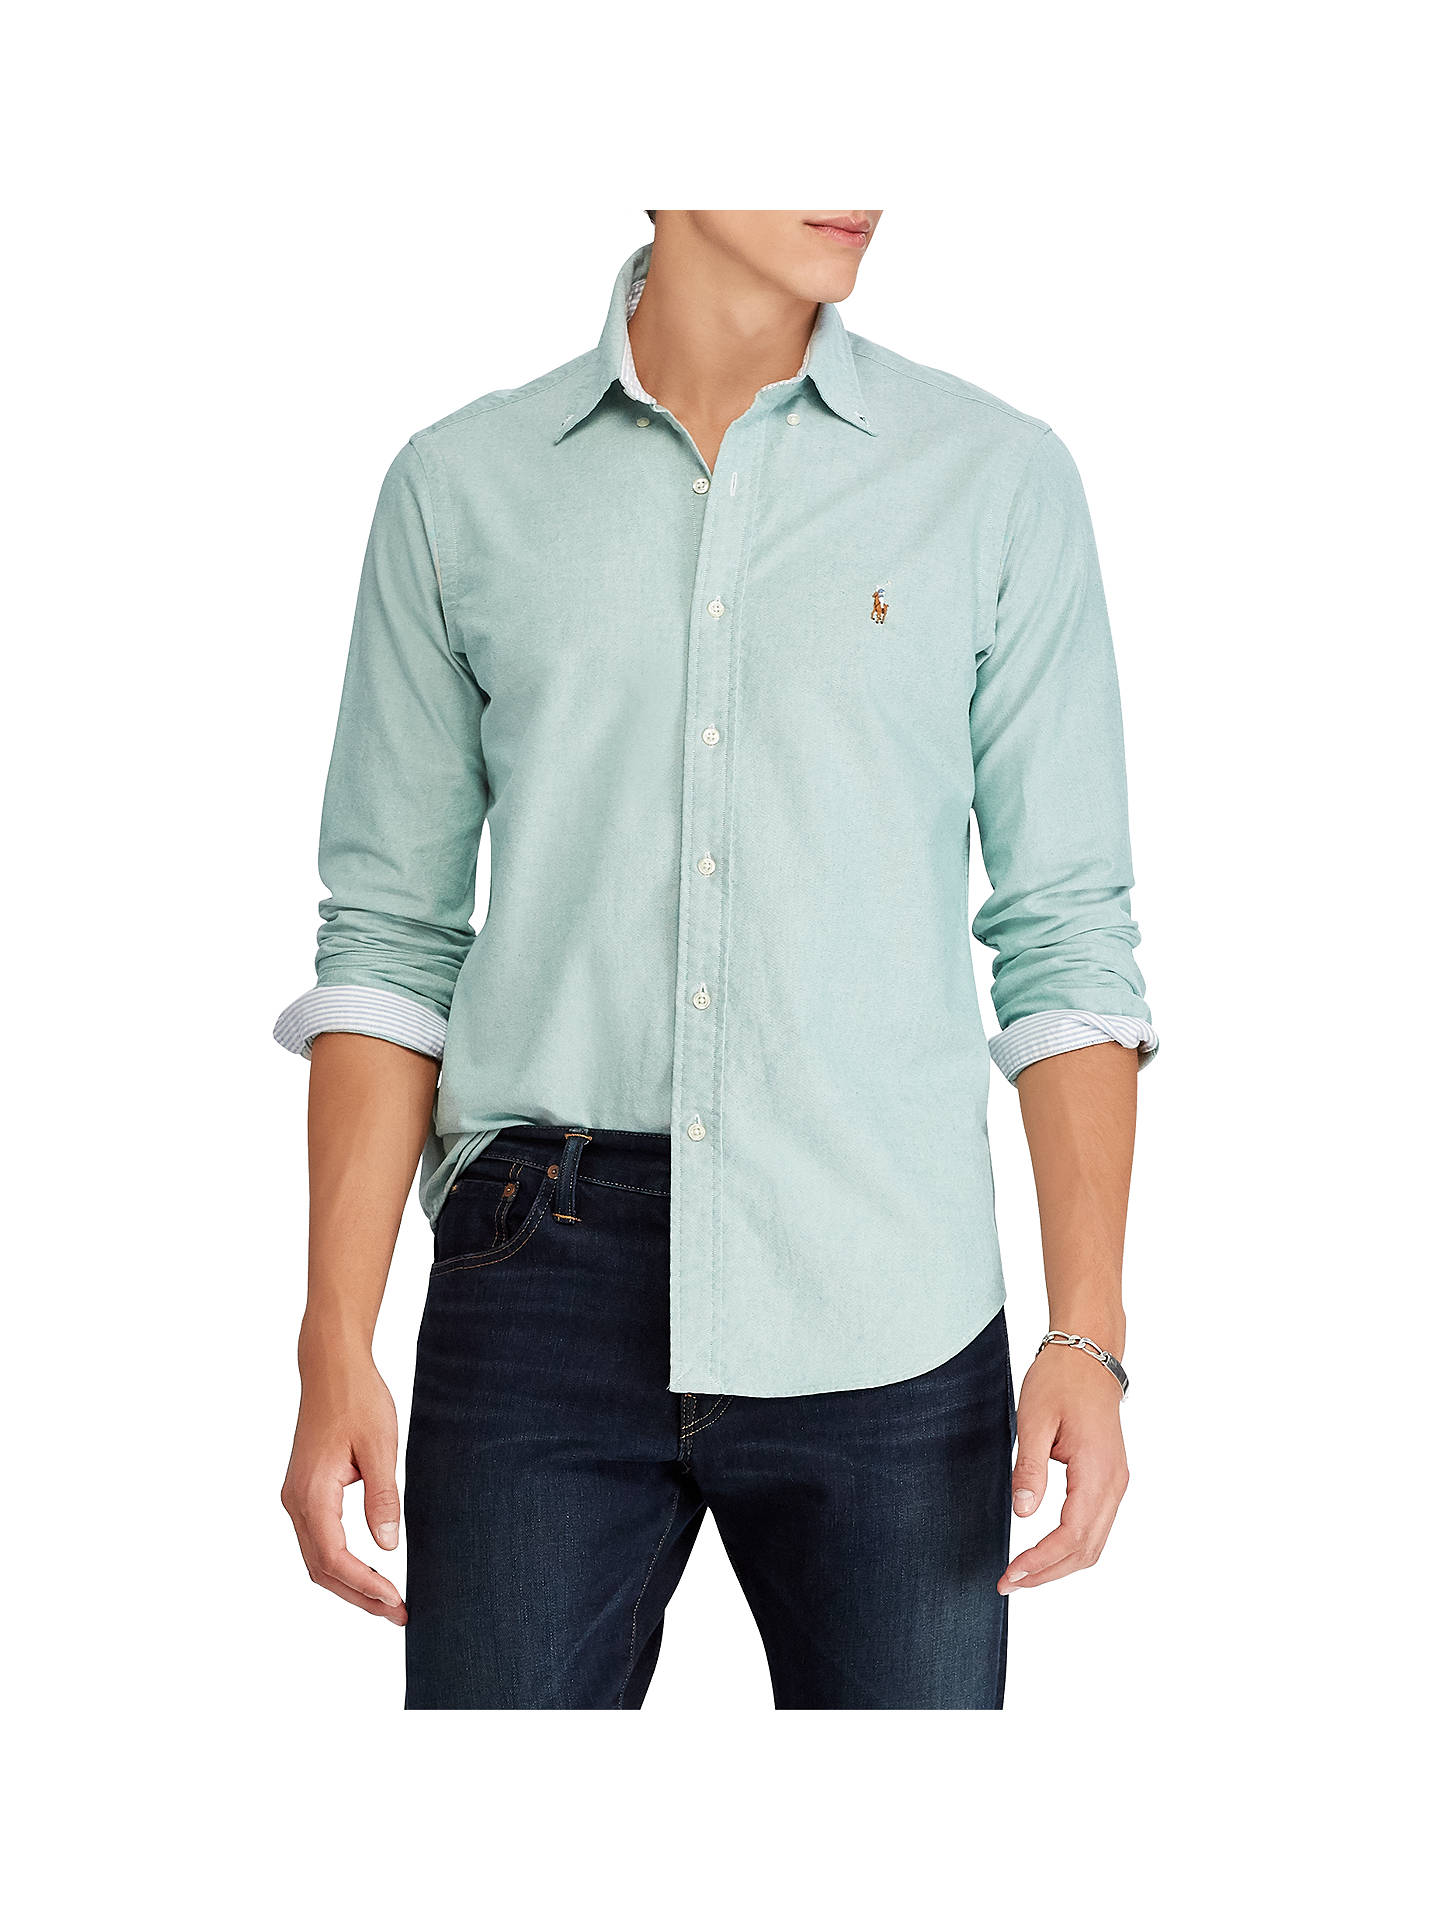 BuyPolo Ralph Lauren Long Sleeve Oxford Shirt, Green, XL Online at johnlewis.com